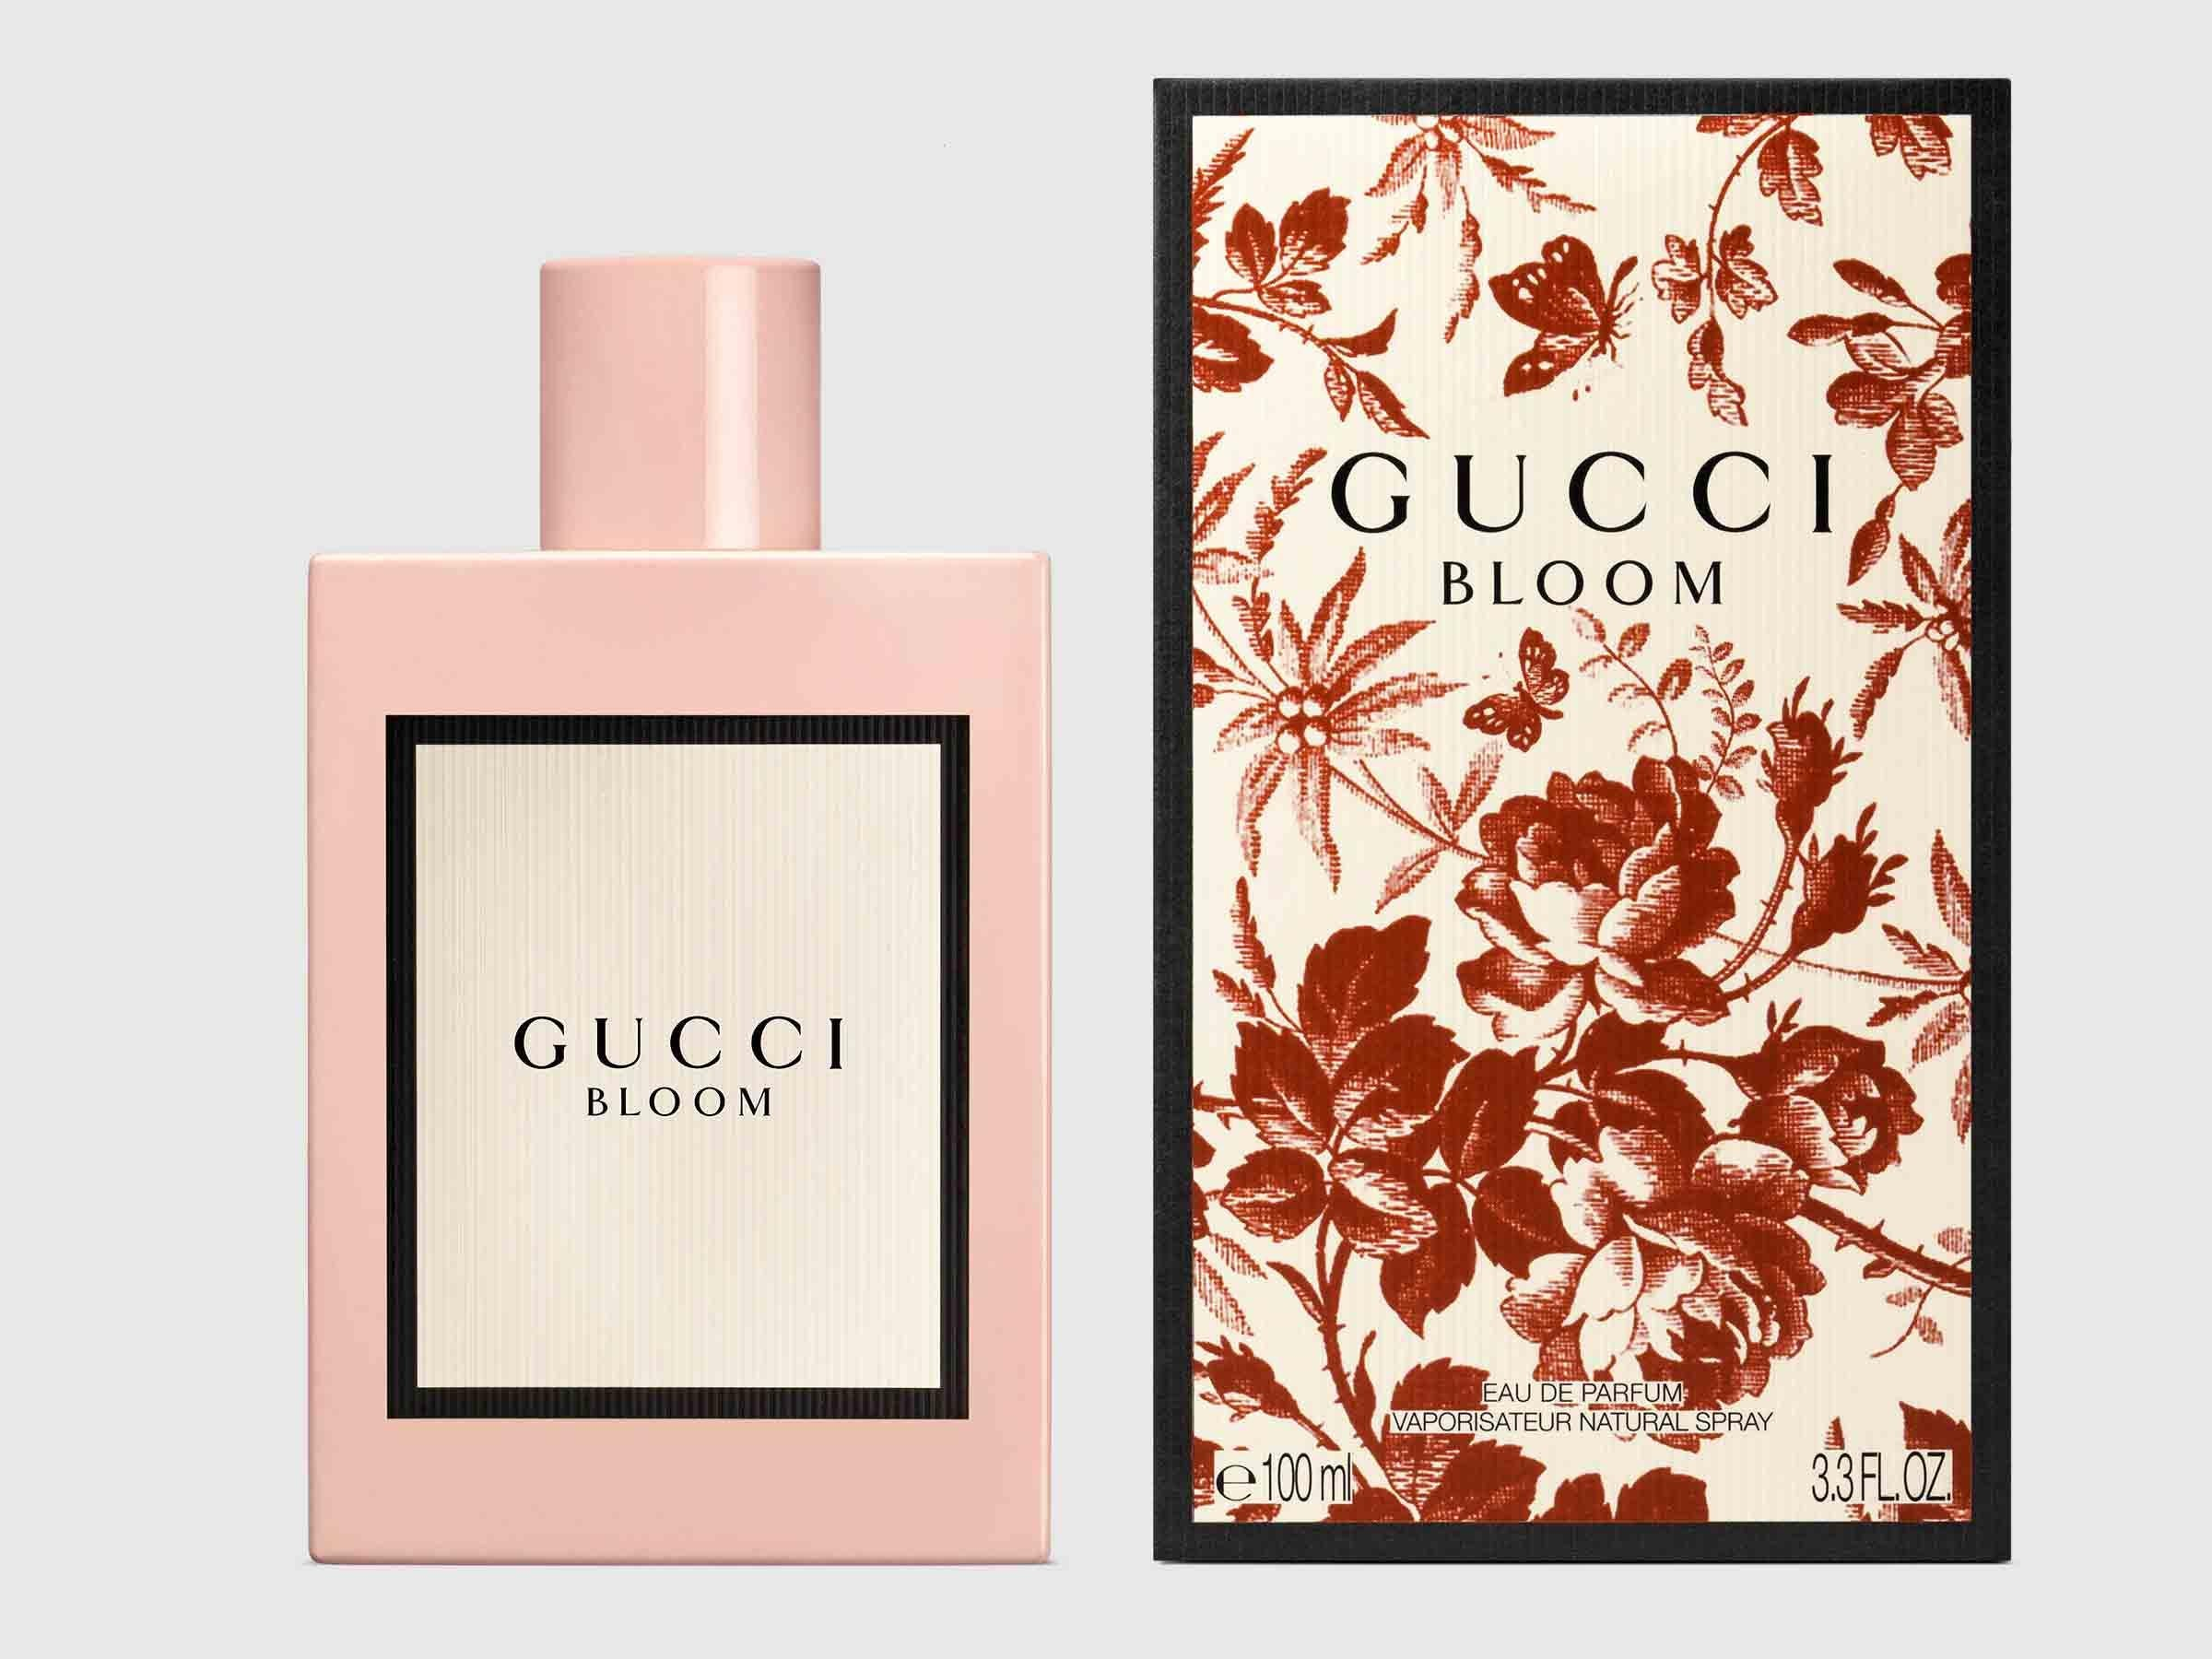 Gucci - a variety of flavors that emphasize individuality